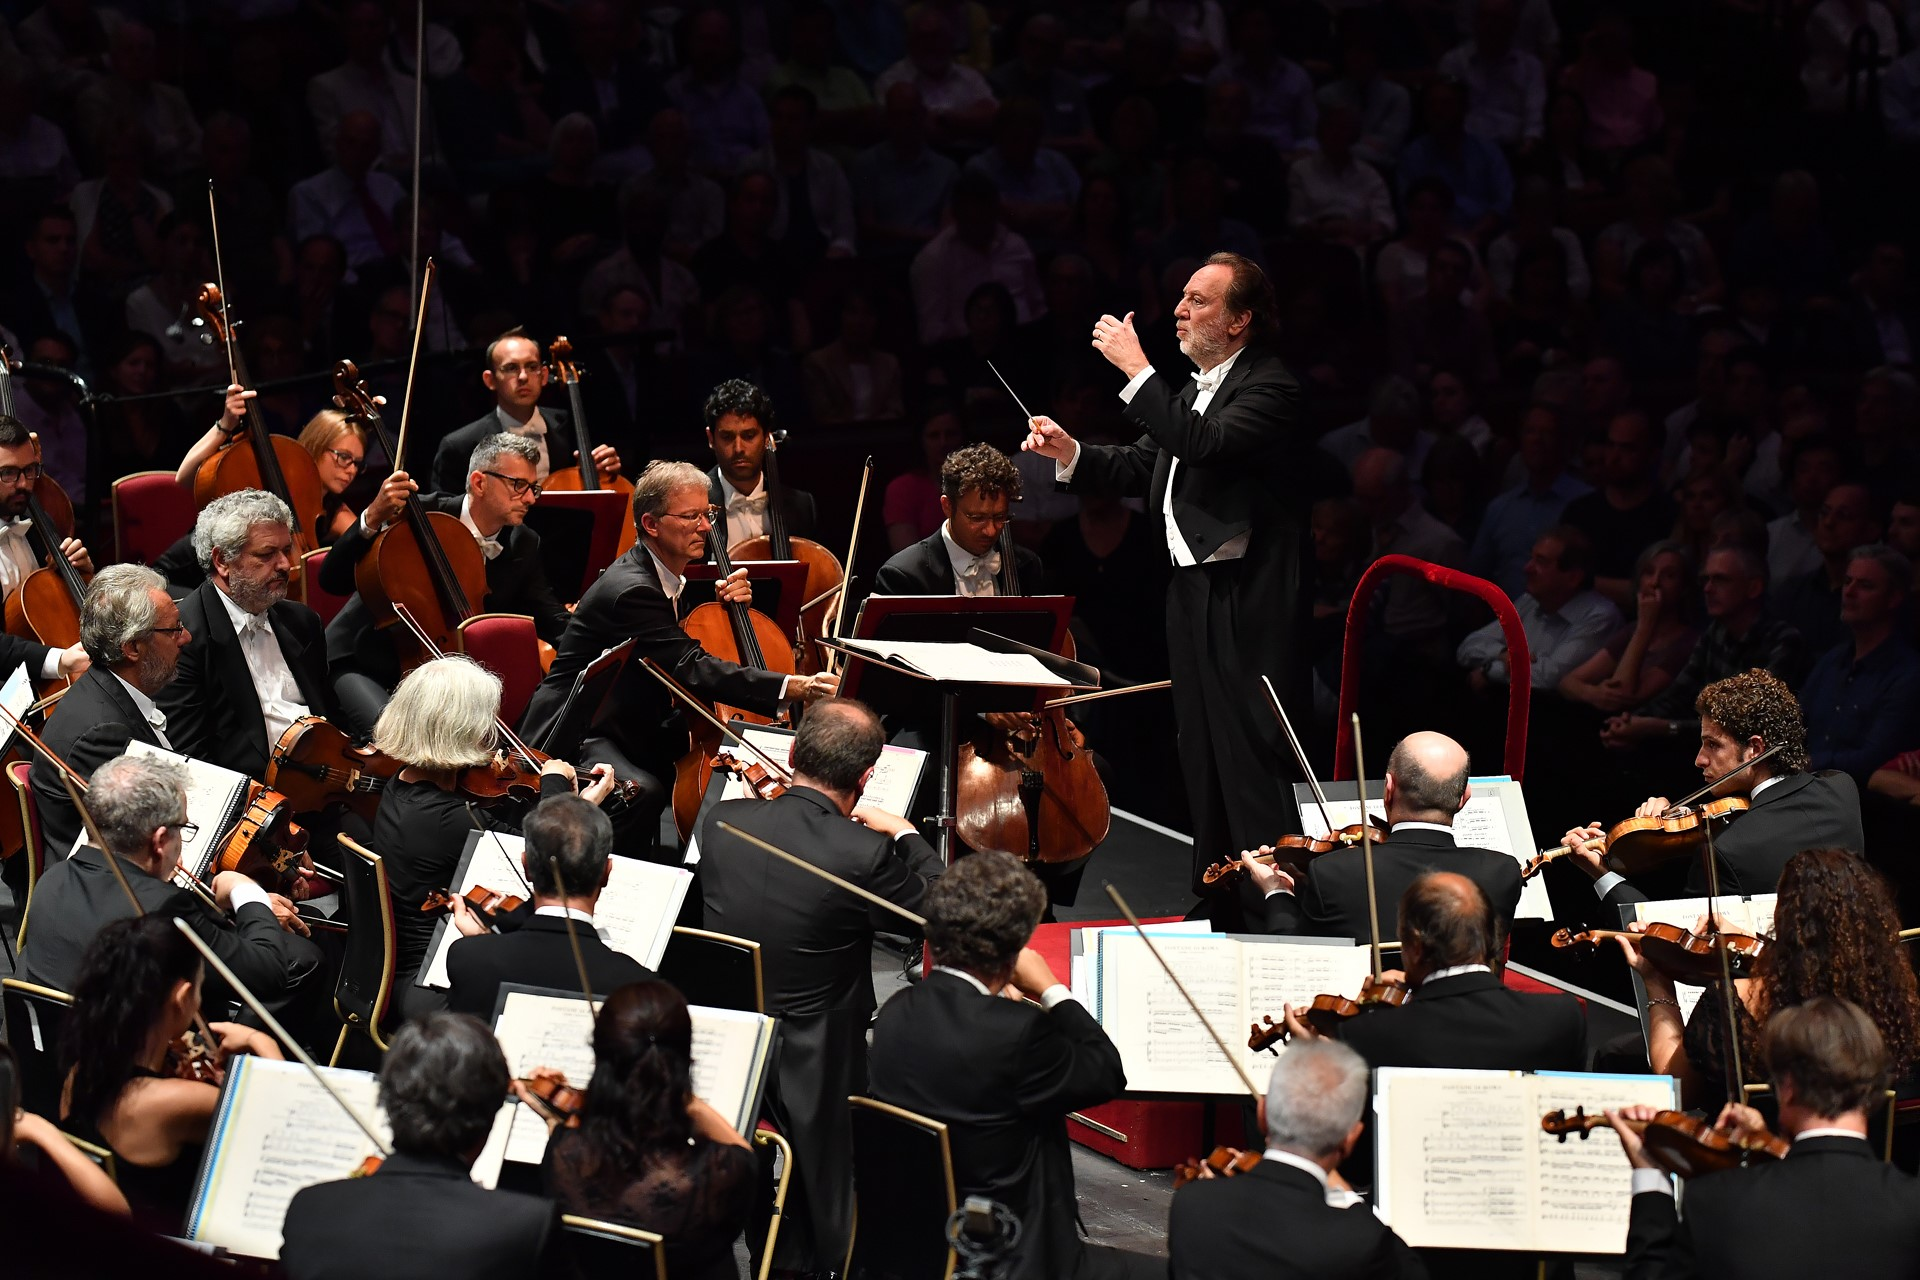 Riccardo Chailly conducts the Filarmonica della Scala in Respighi's Fountains of Rome and Pines of Rome, at the BBC Proms 2017 at the Royal Albert Hall. Photo: BBC/Chris Christodoulou